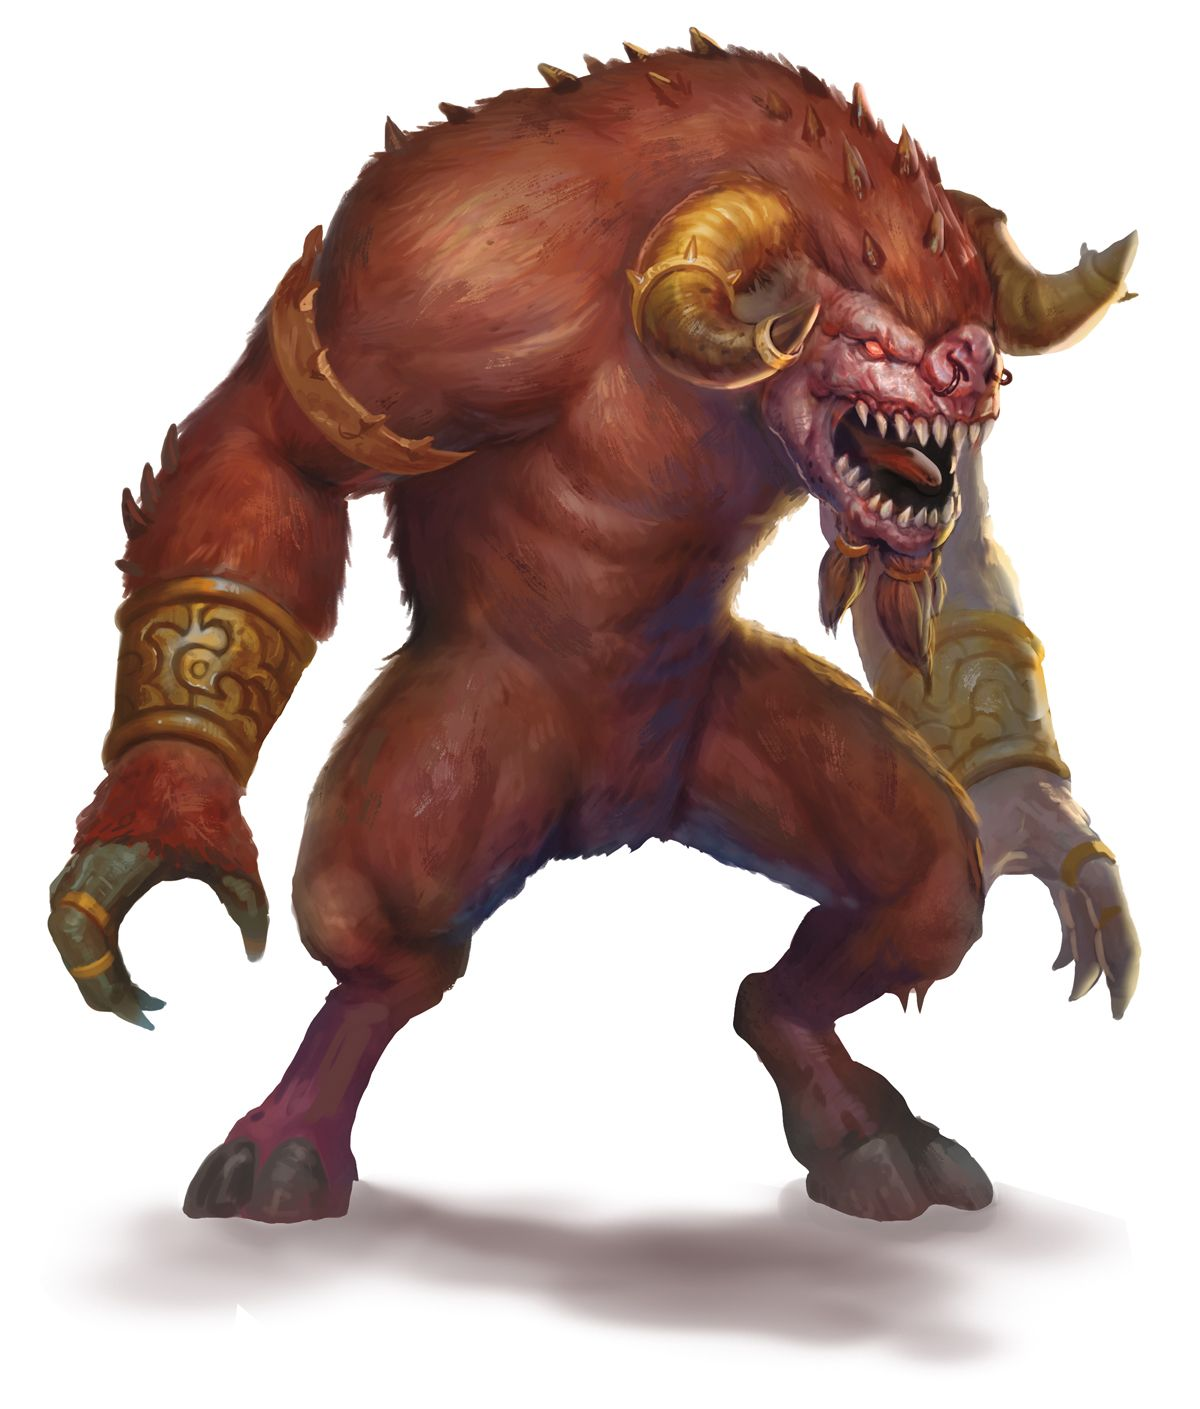 Let's Read: The Dungeons and Dragons 5e Monster Manual